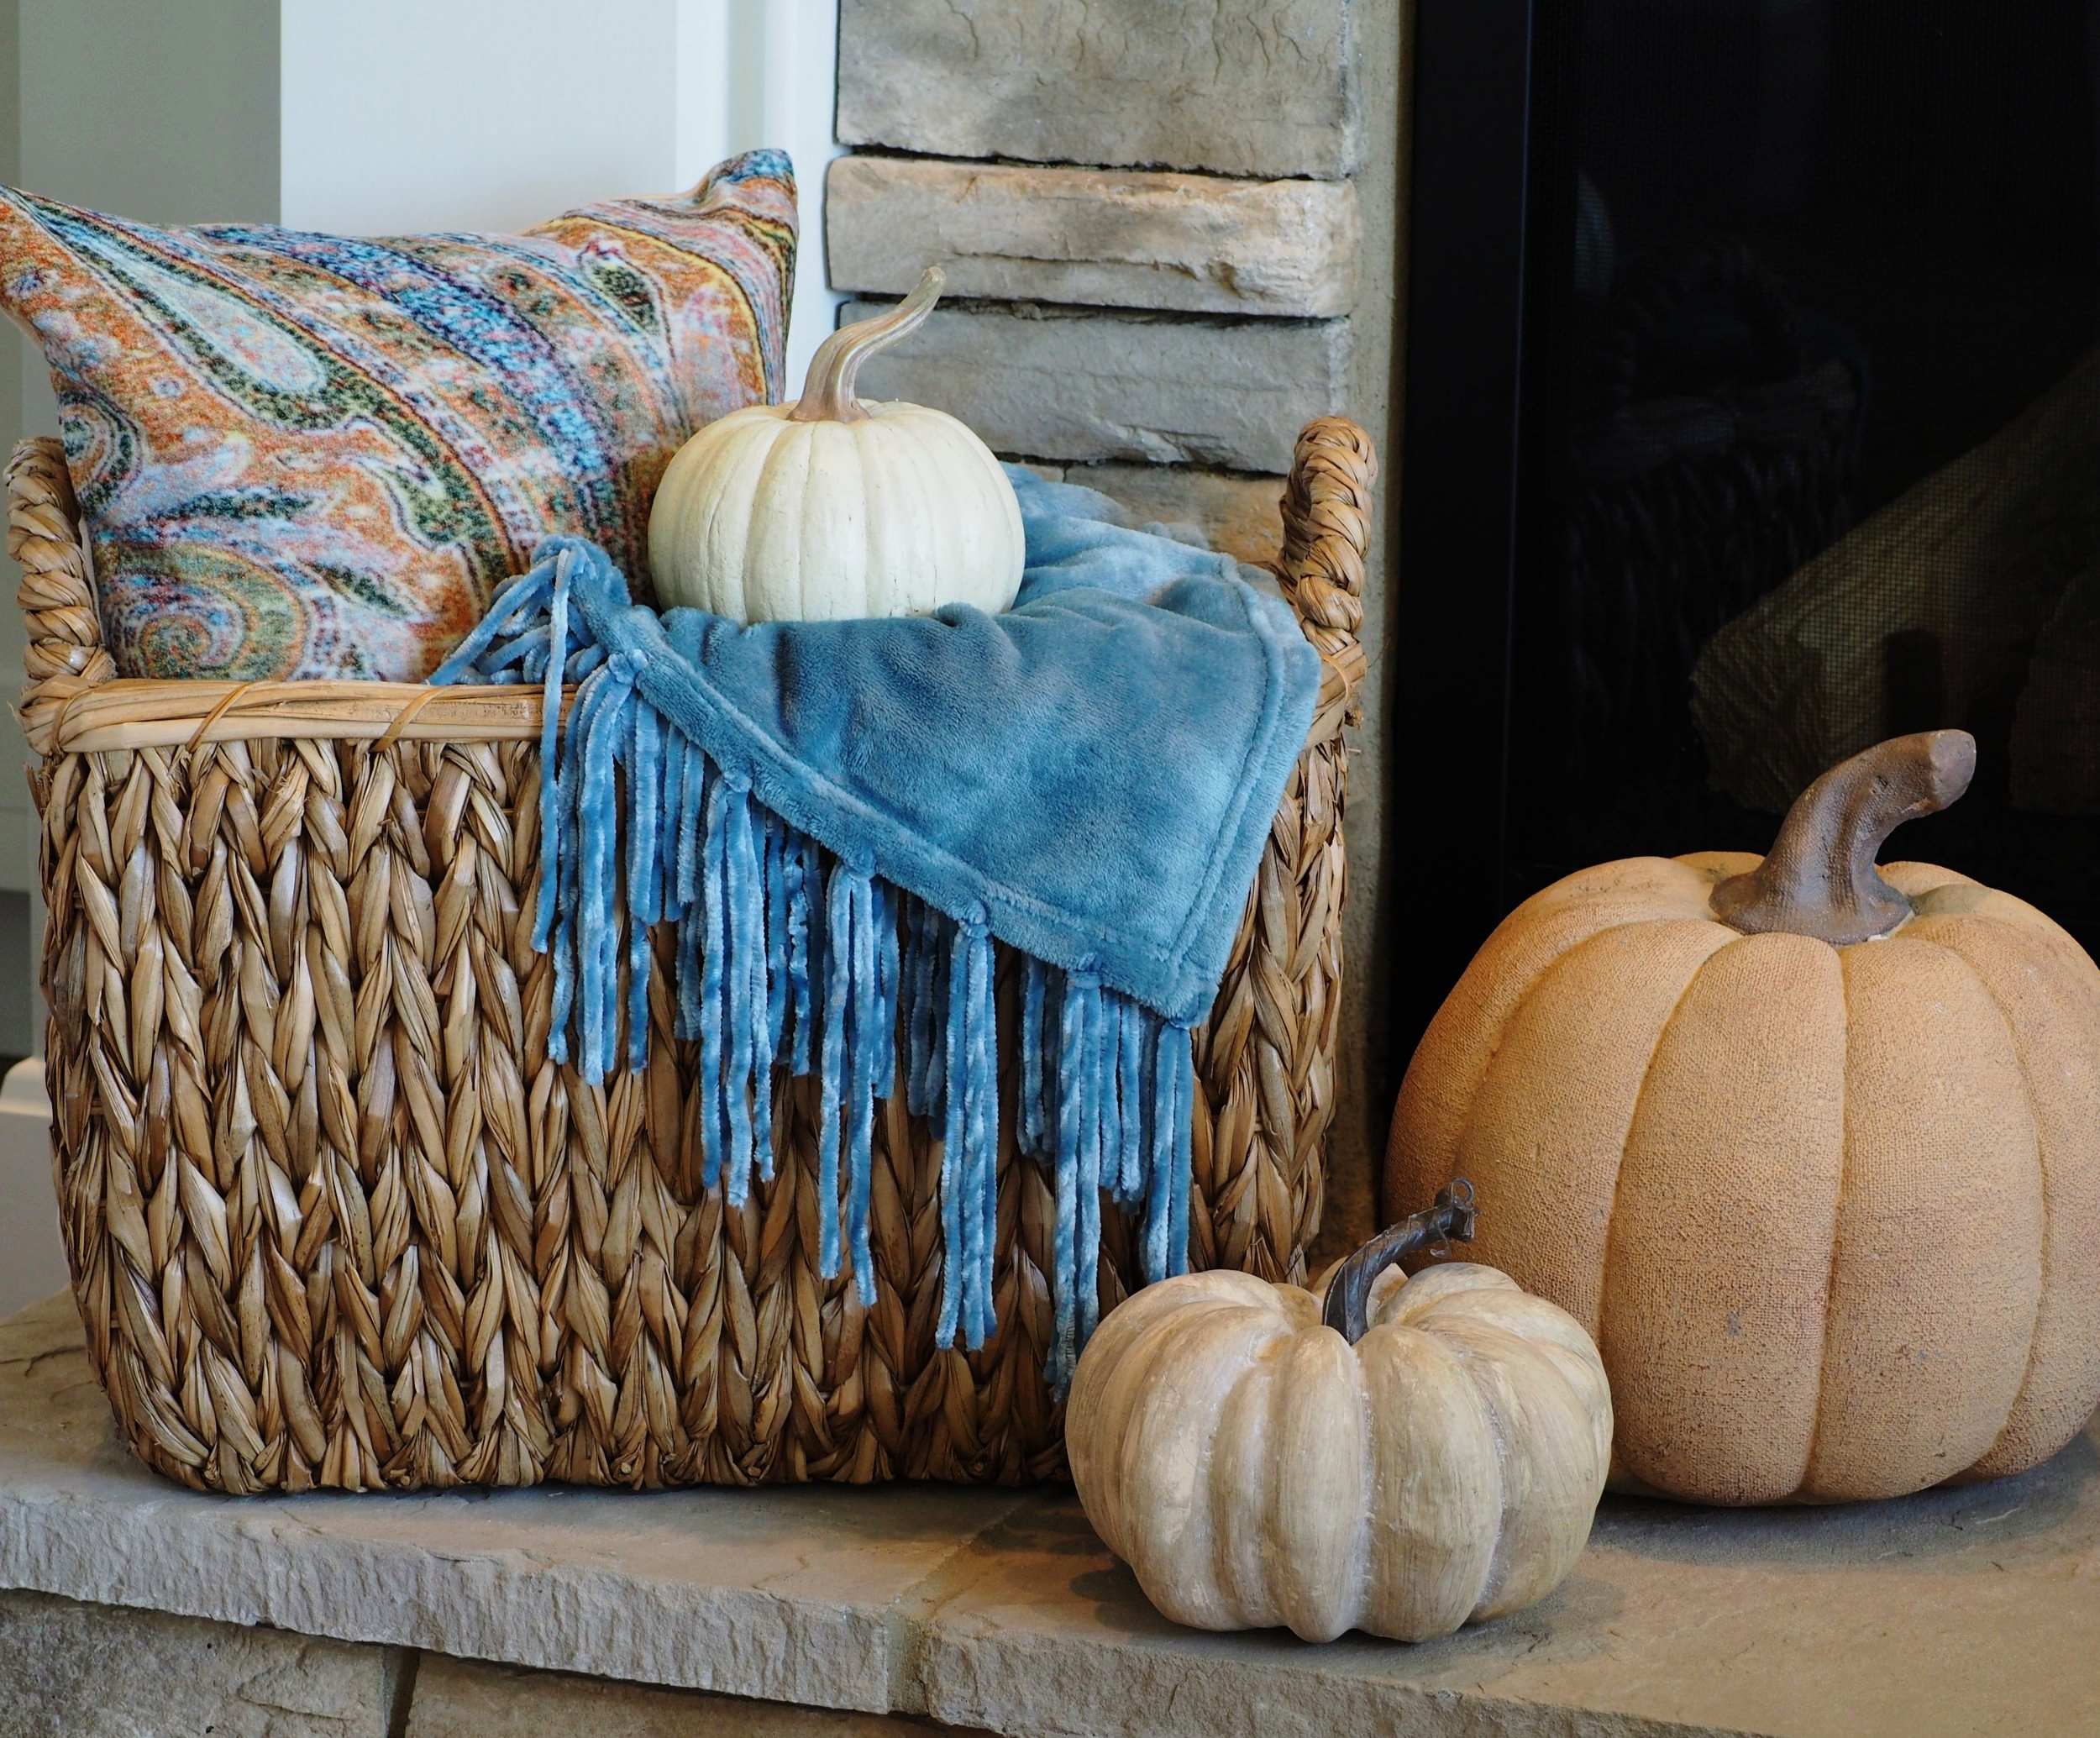 These were all new additions for my fall decor this year. I went out looking for some color and came home with this beautiful blue throw from Home Goods of course, it's pretty much my go to store for everything! The basket, gorgeous pillow and large, pale orange pumpkin were also found at Home Goods. The smaller pumpkins were purchased from Hobby Lobby.